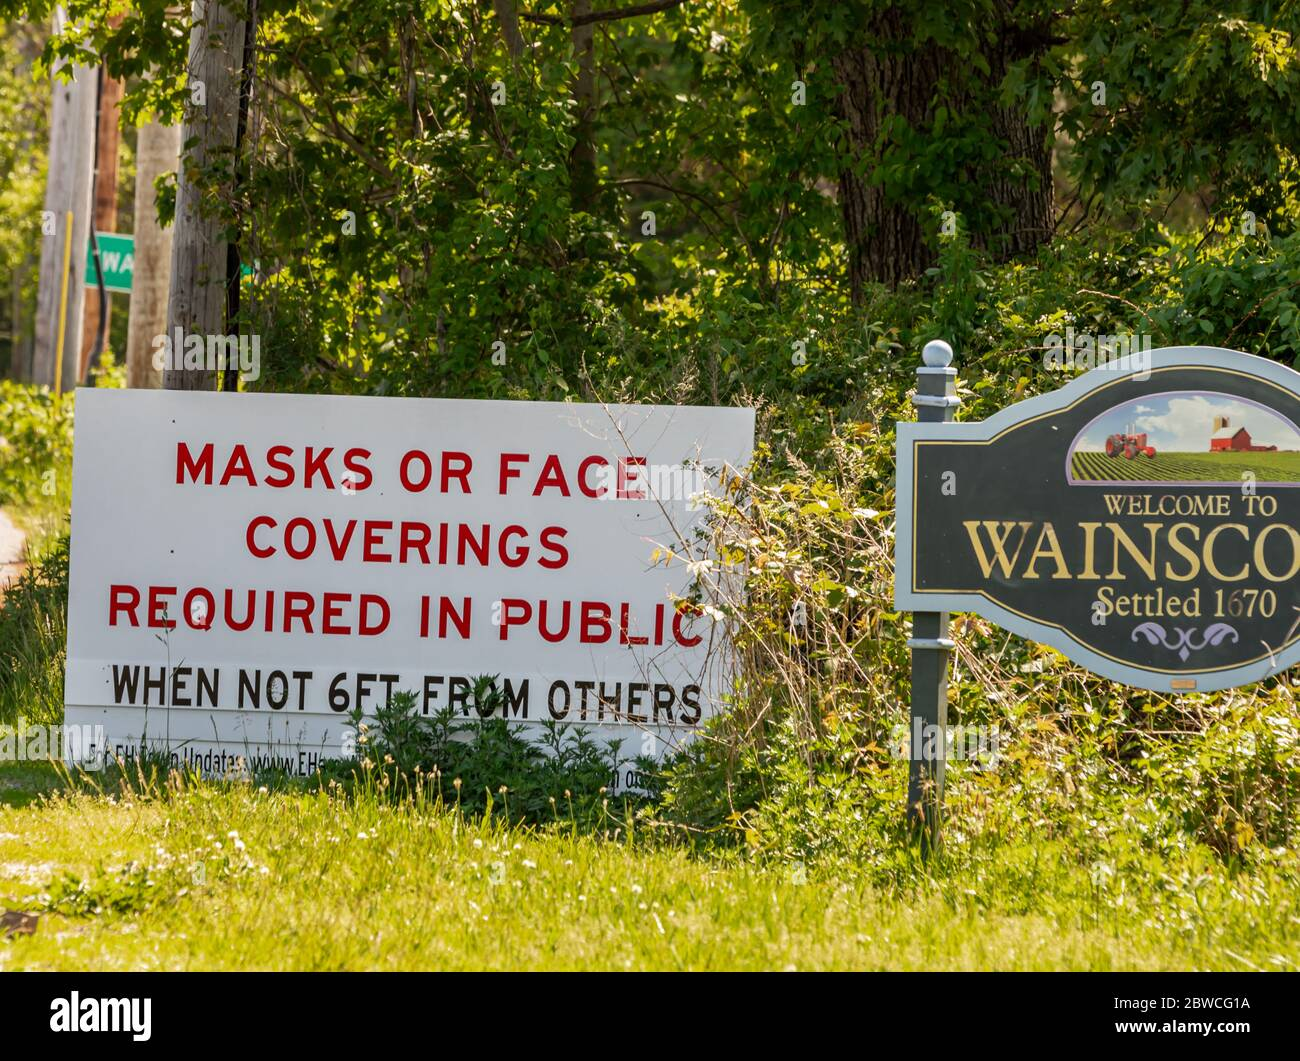 Welcome sign to Wainscott, NY and notice of required masks or face coverings due to Covid 19 Stock Photo